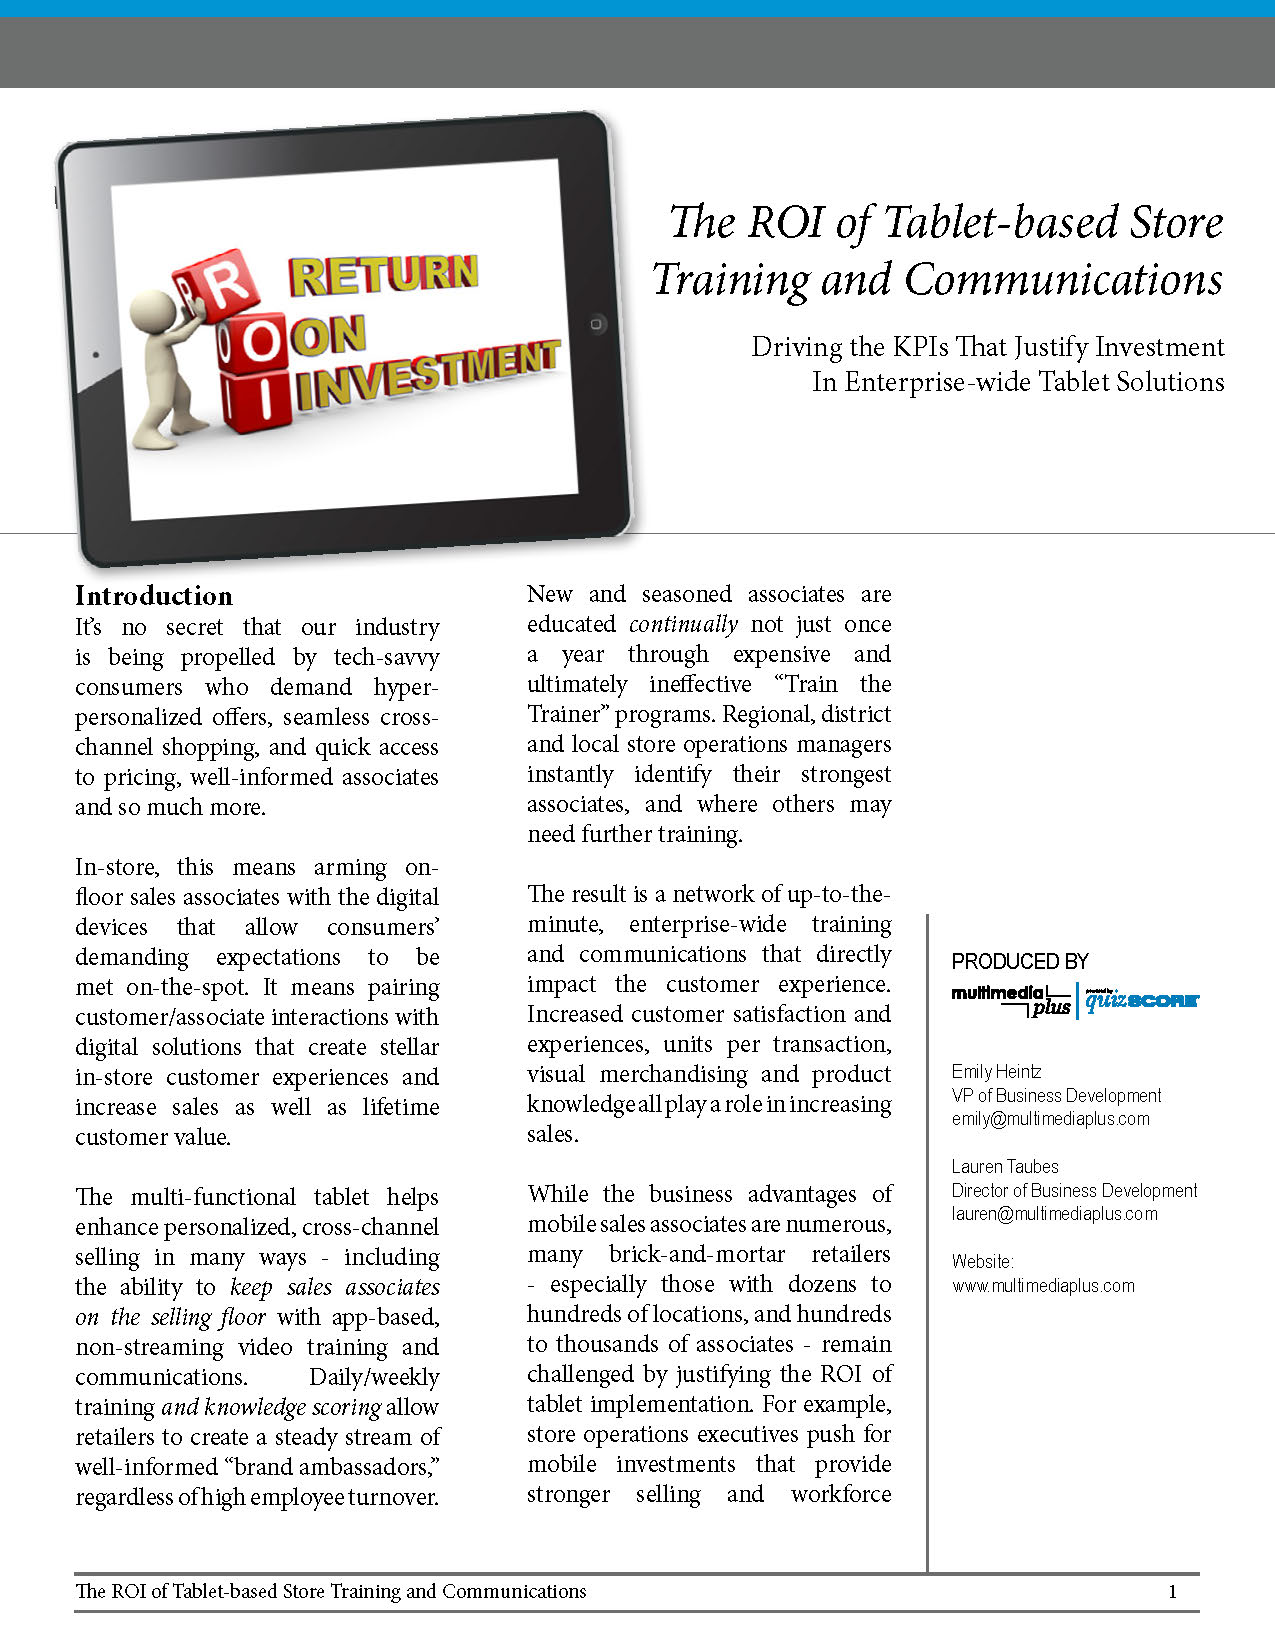 page template whitepaper15 04 10theroi page 1 multimedia plus inc